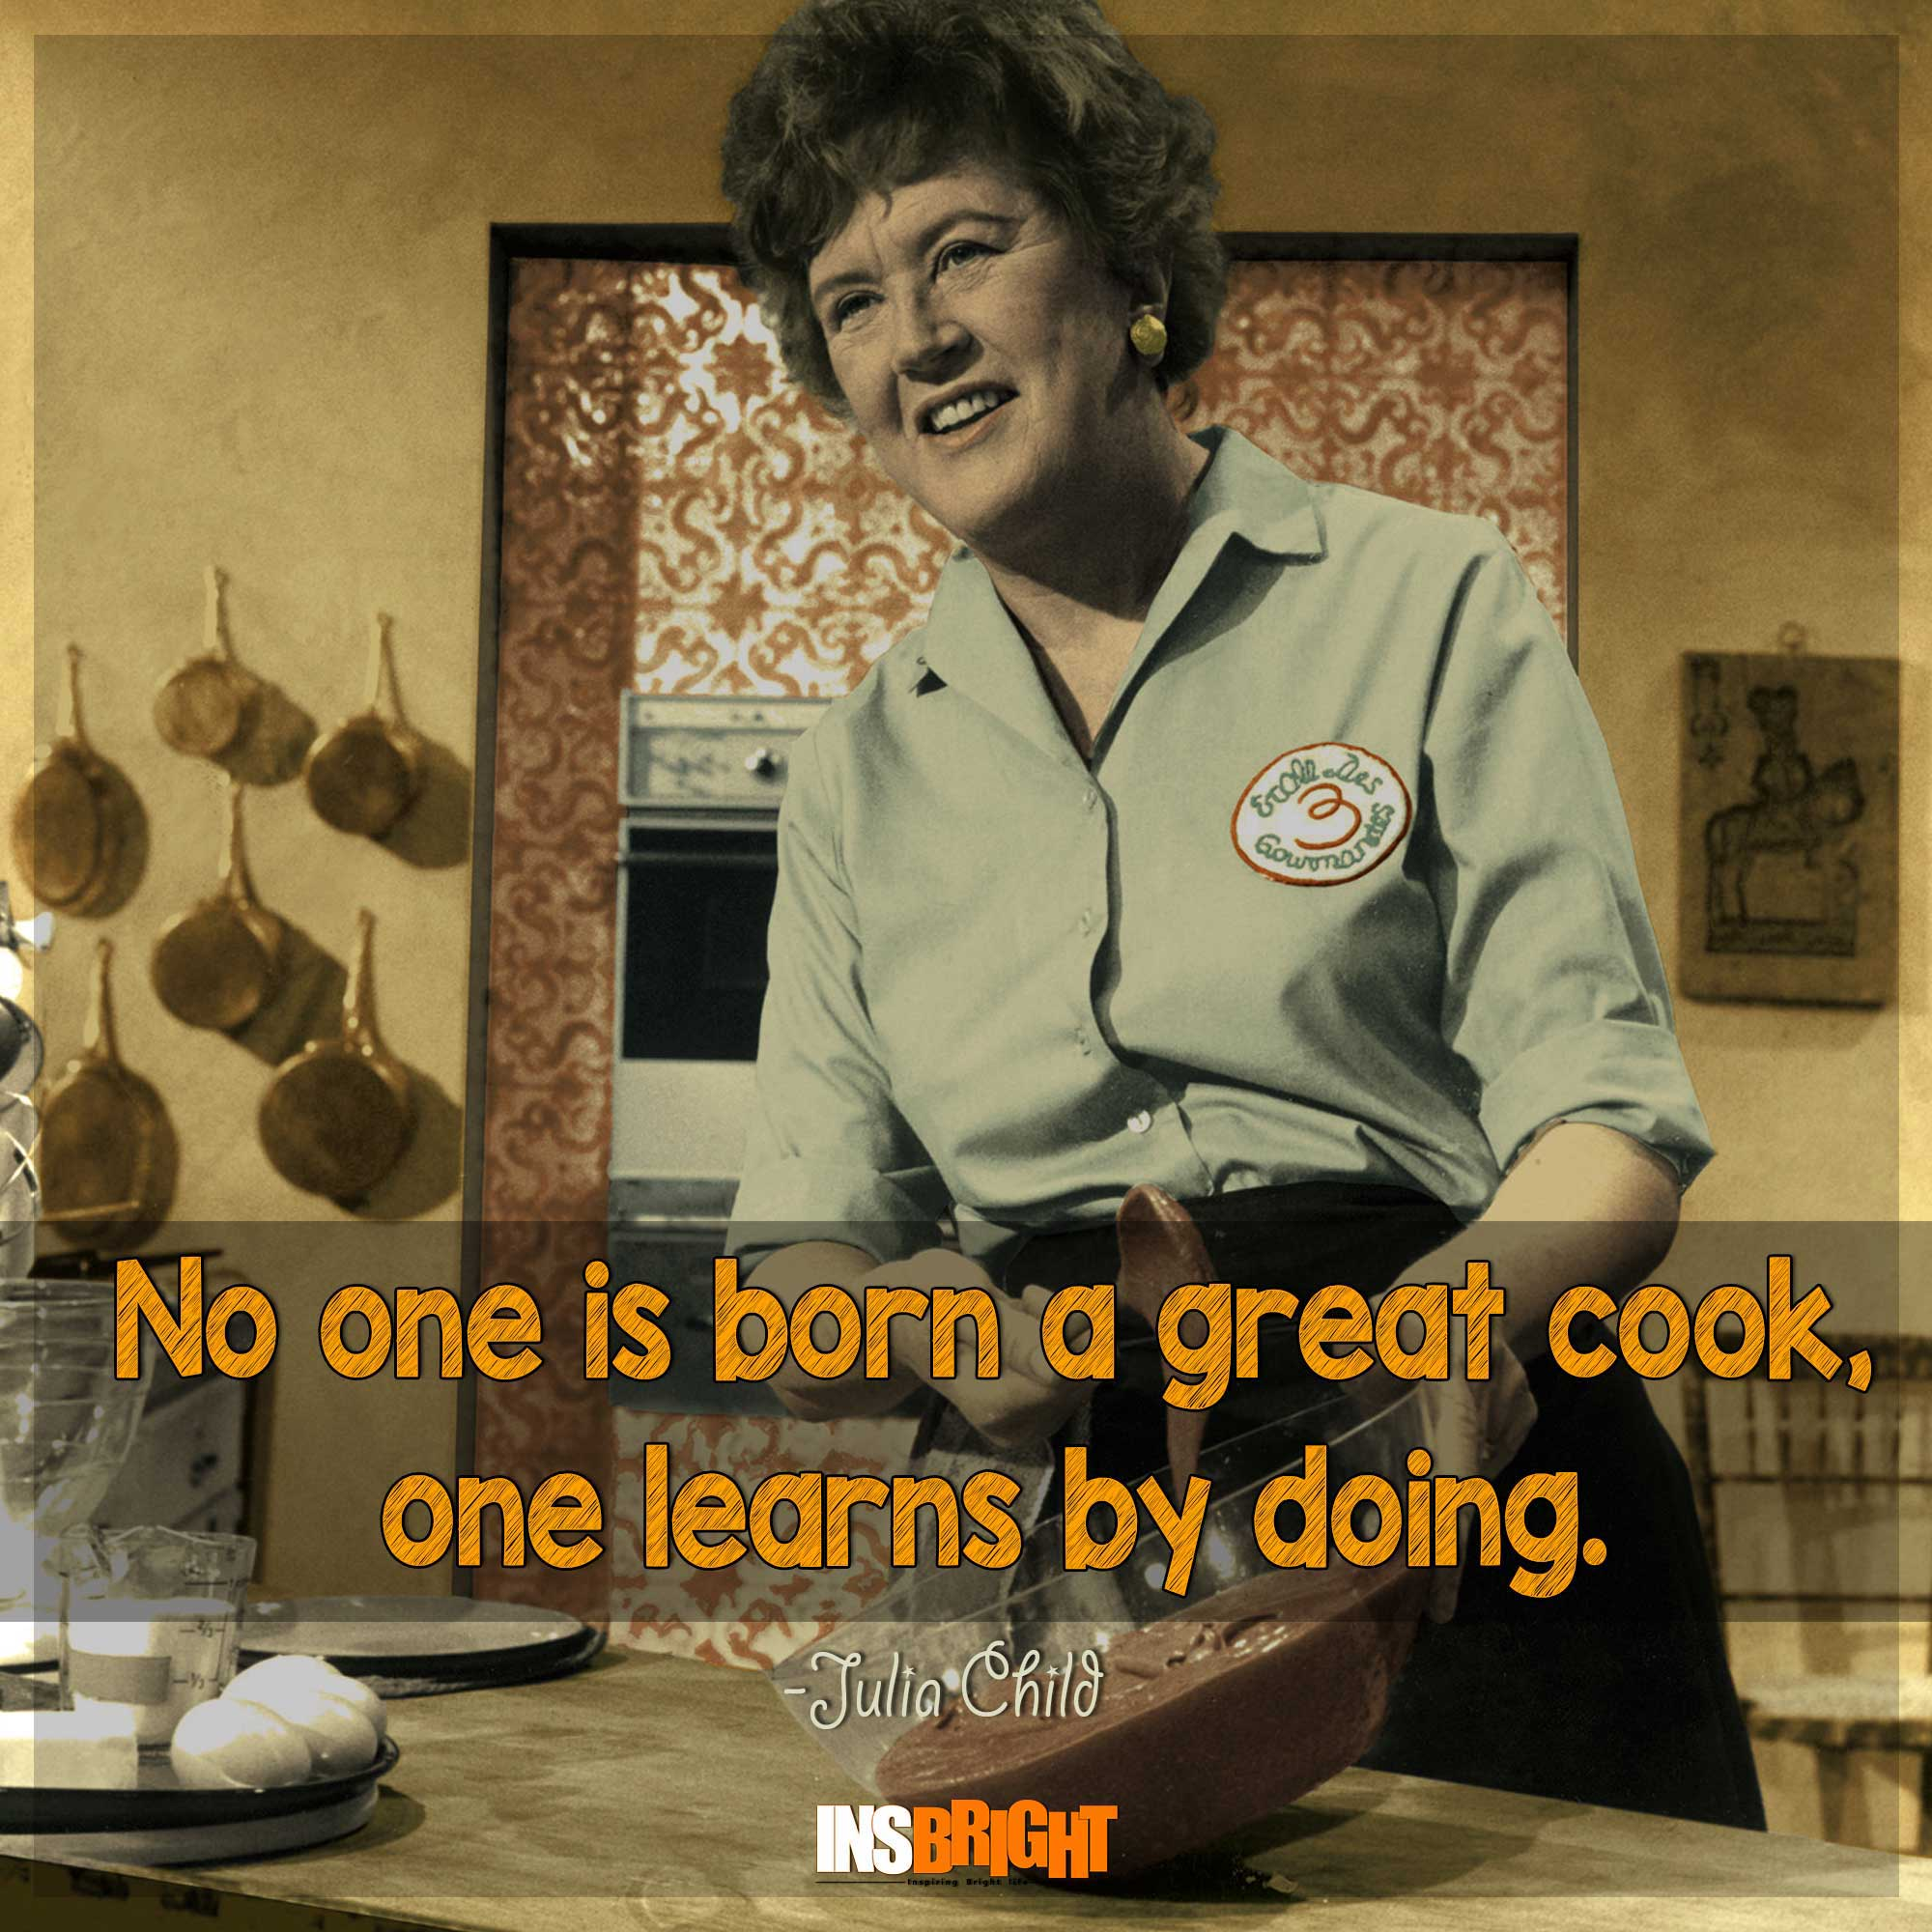 Inspirational Cooking Quotes With Images From Famous Chefs Insbright